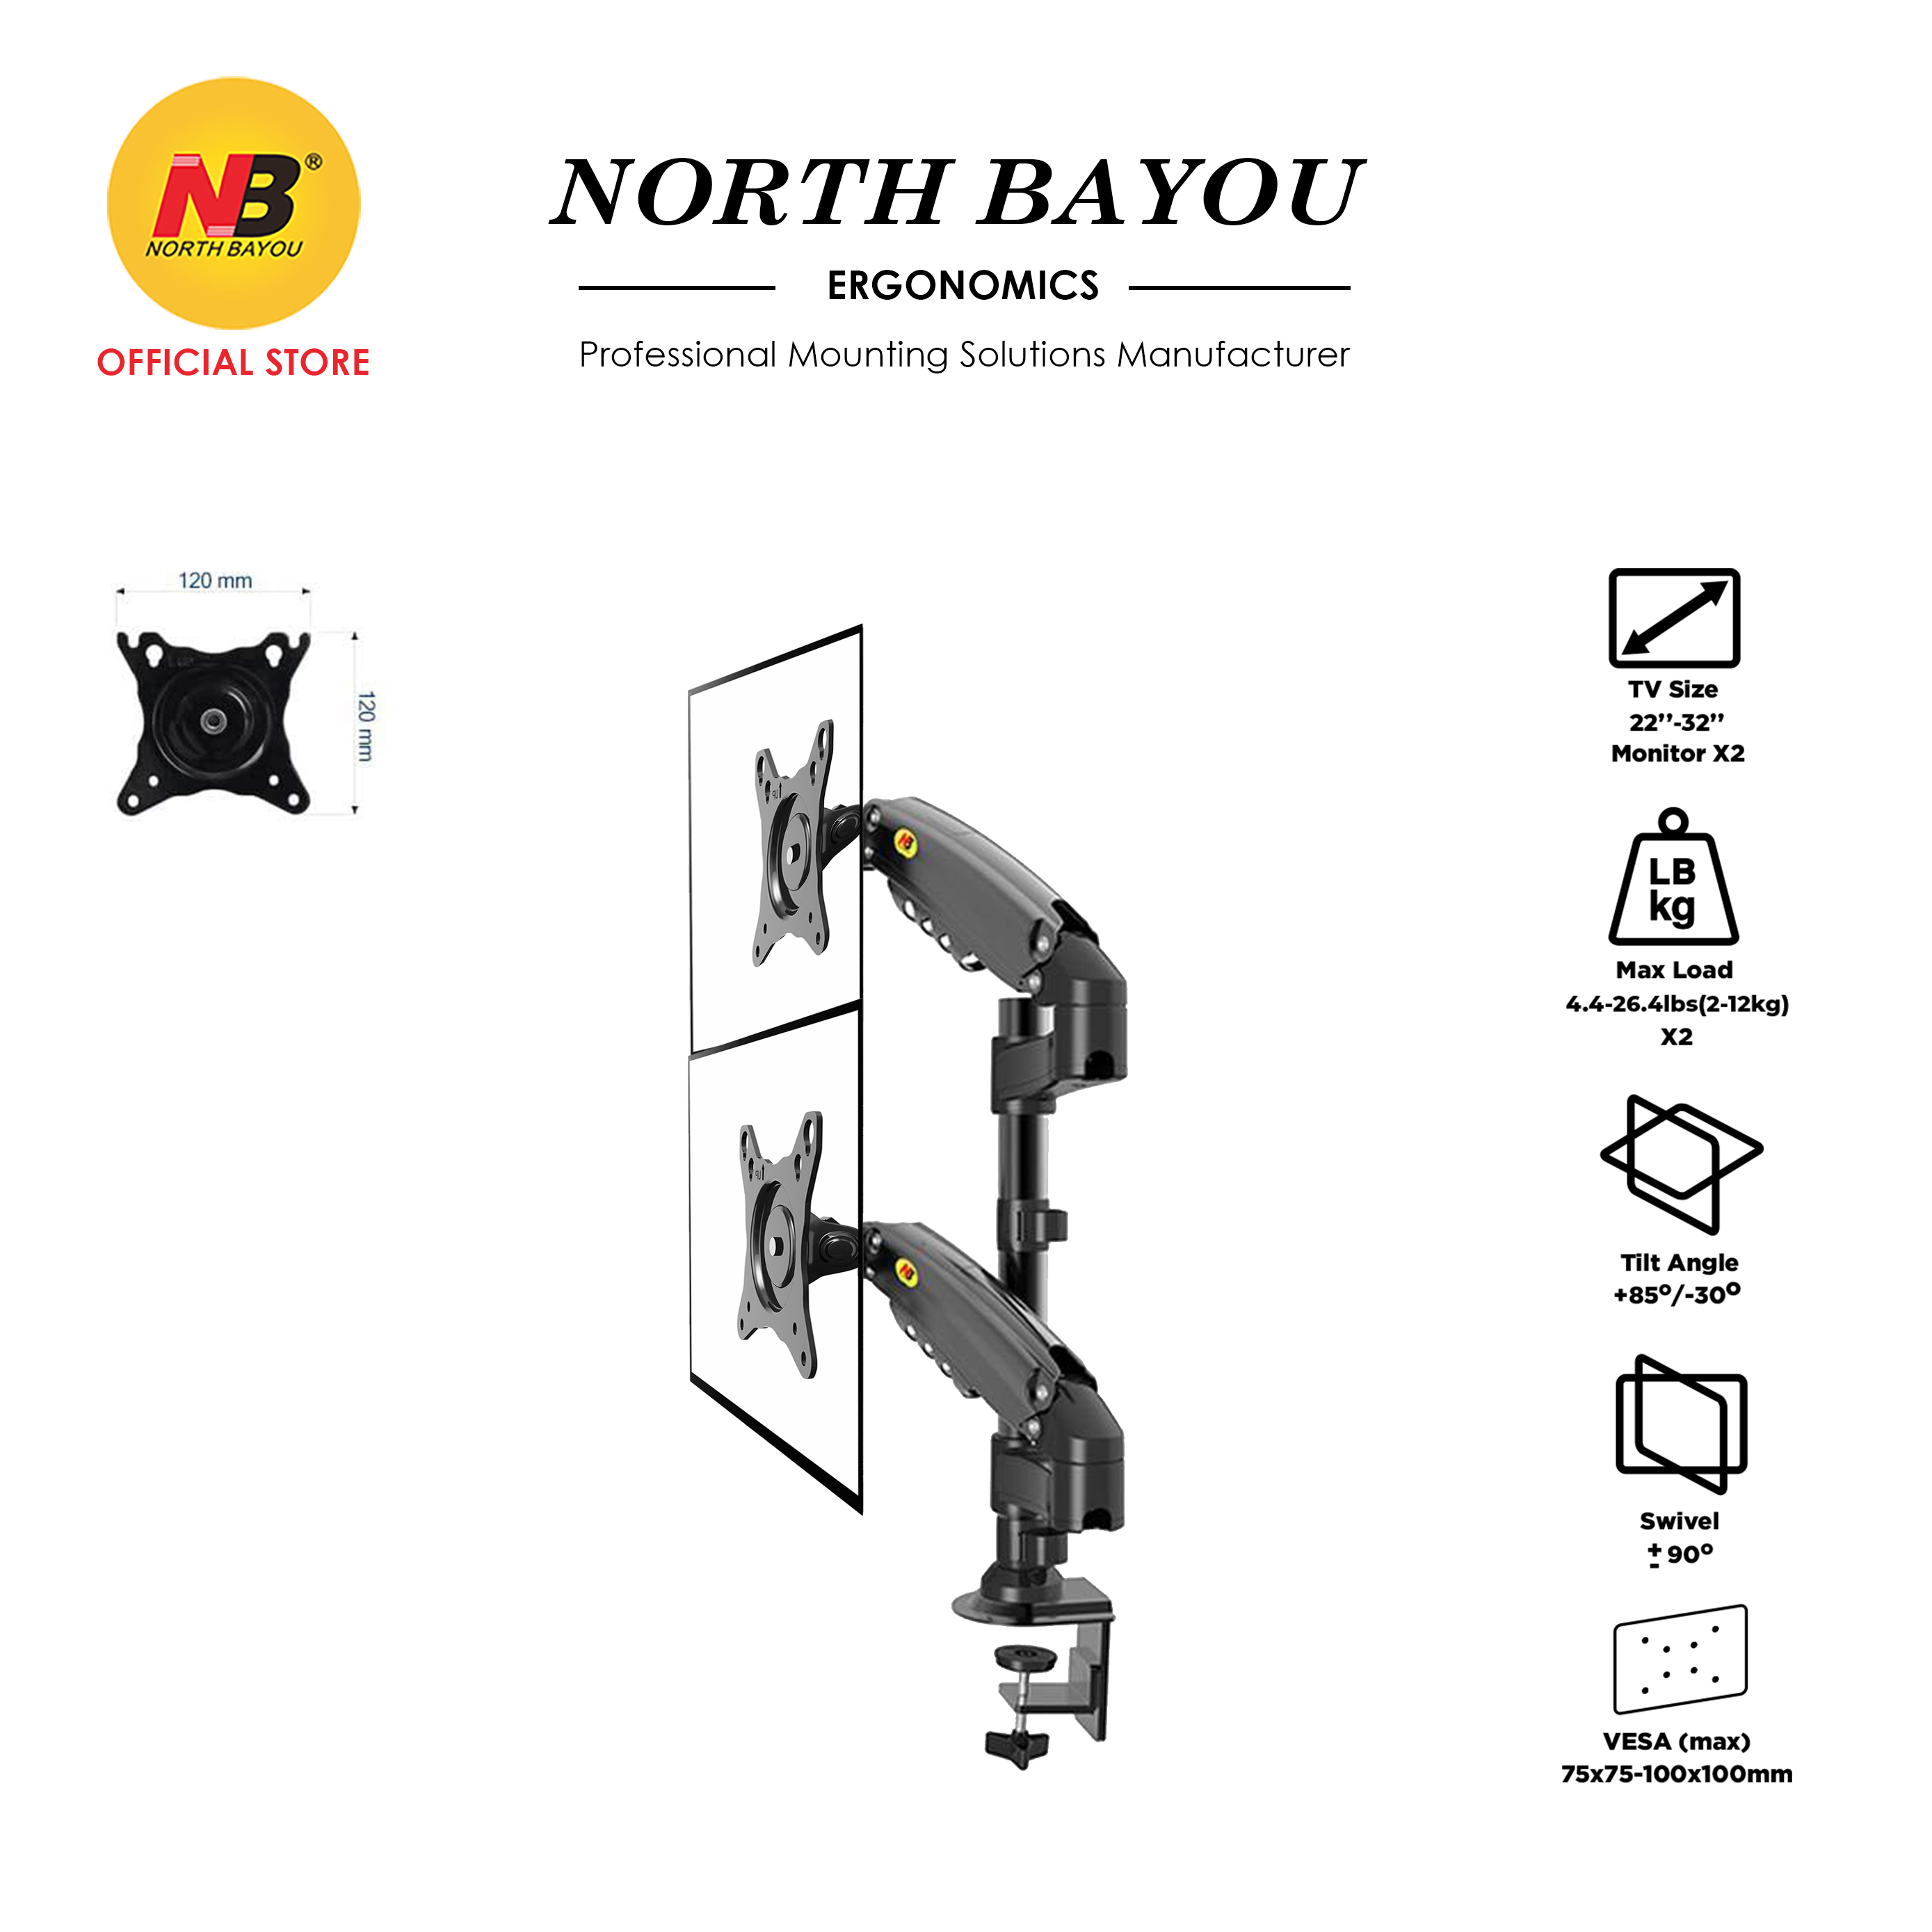 NB North Bayou H180 22-32 Inch Gas Strut Dual TV Monitor Bracket Desk Stand Mount Holder Up to 12kg for Each Monitor